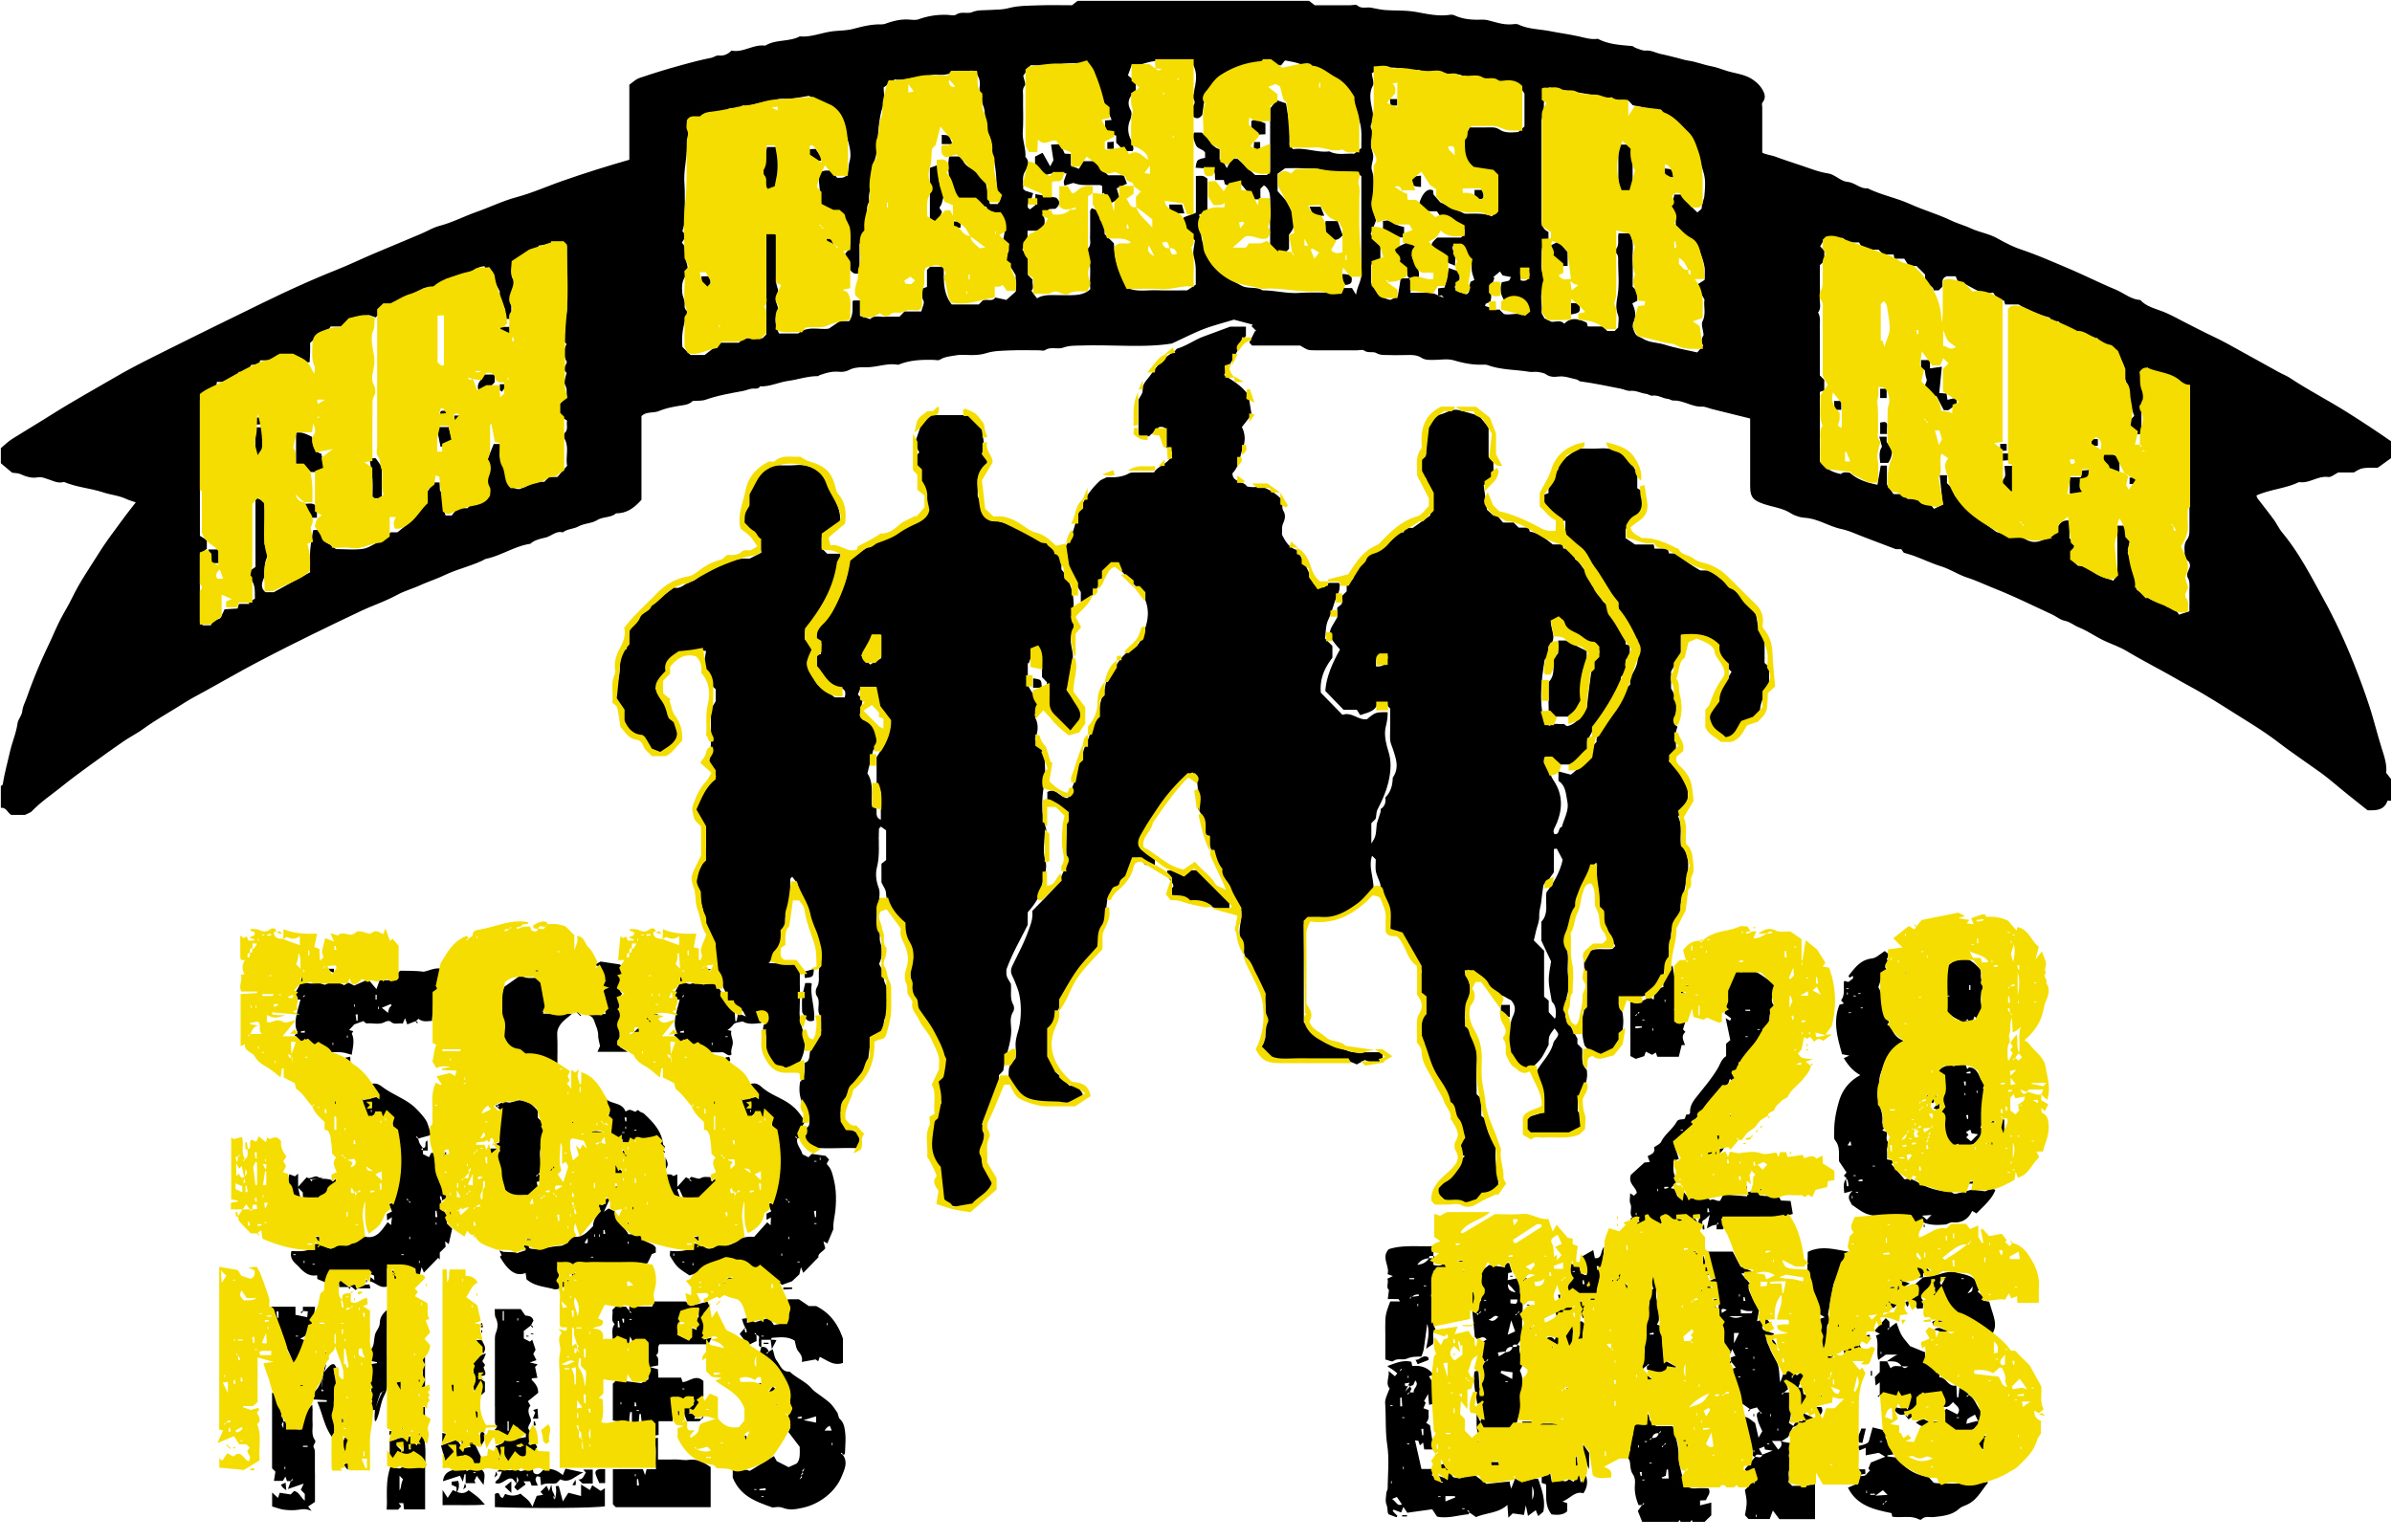 the gallery for gt army ranger logo png